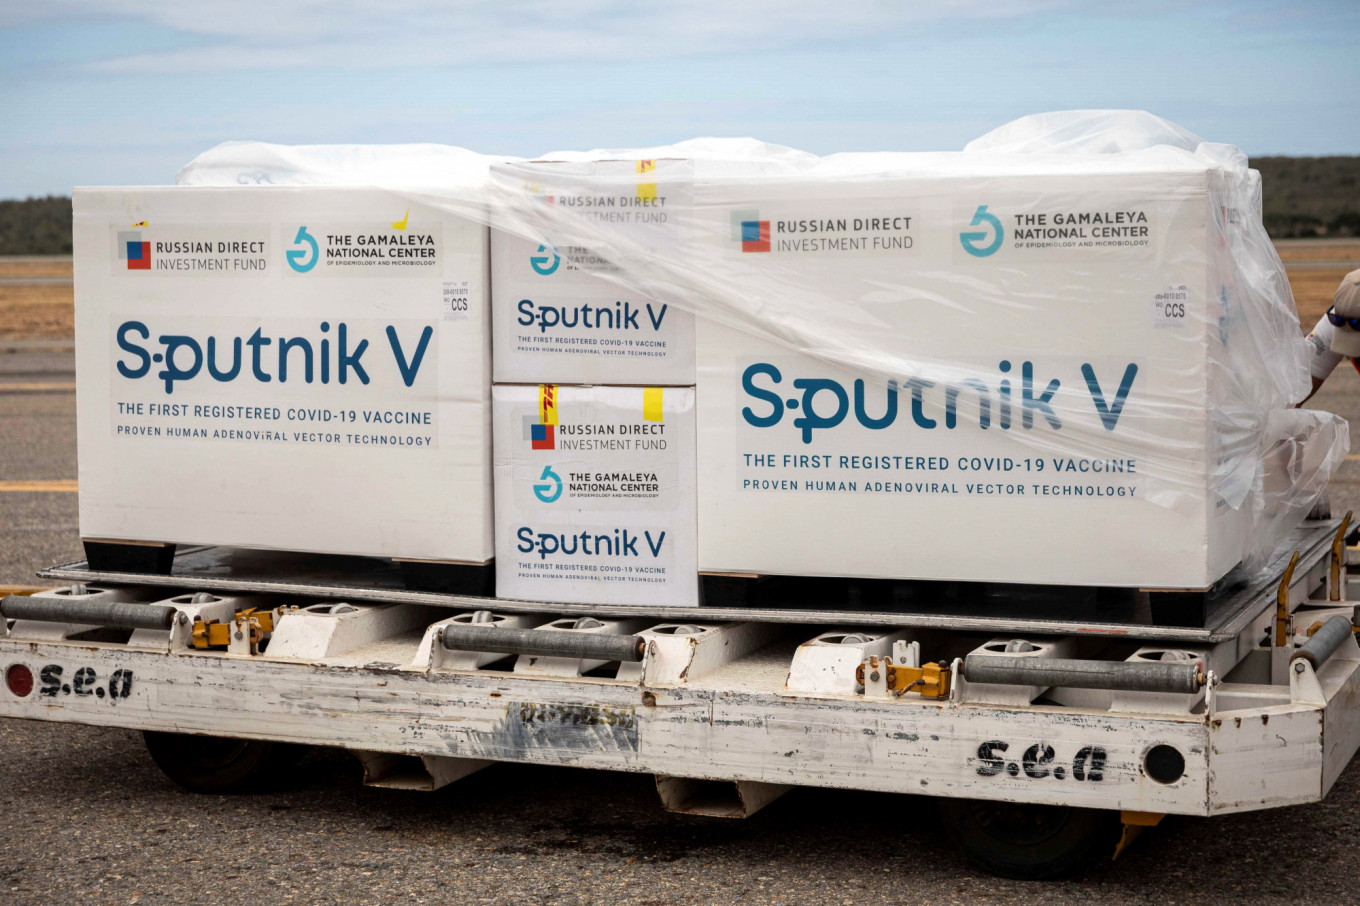 Slovakia Receives First Shipment of Russia's Sputnik V Vaccine – The Moscow Times